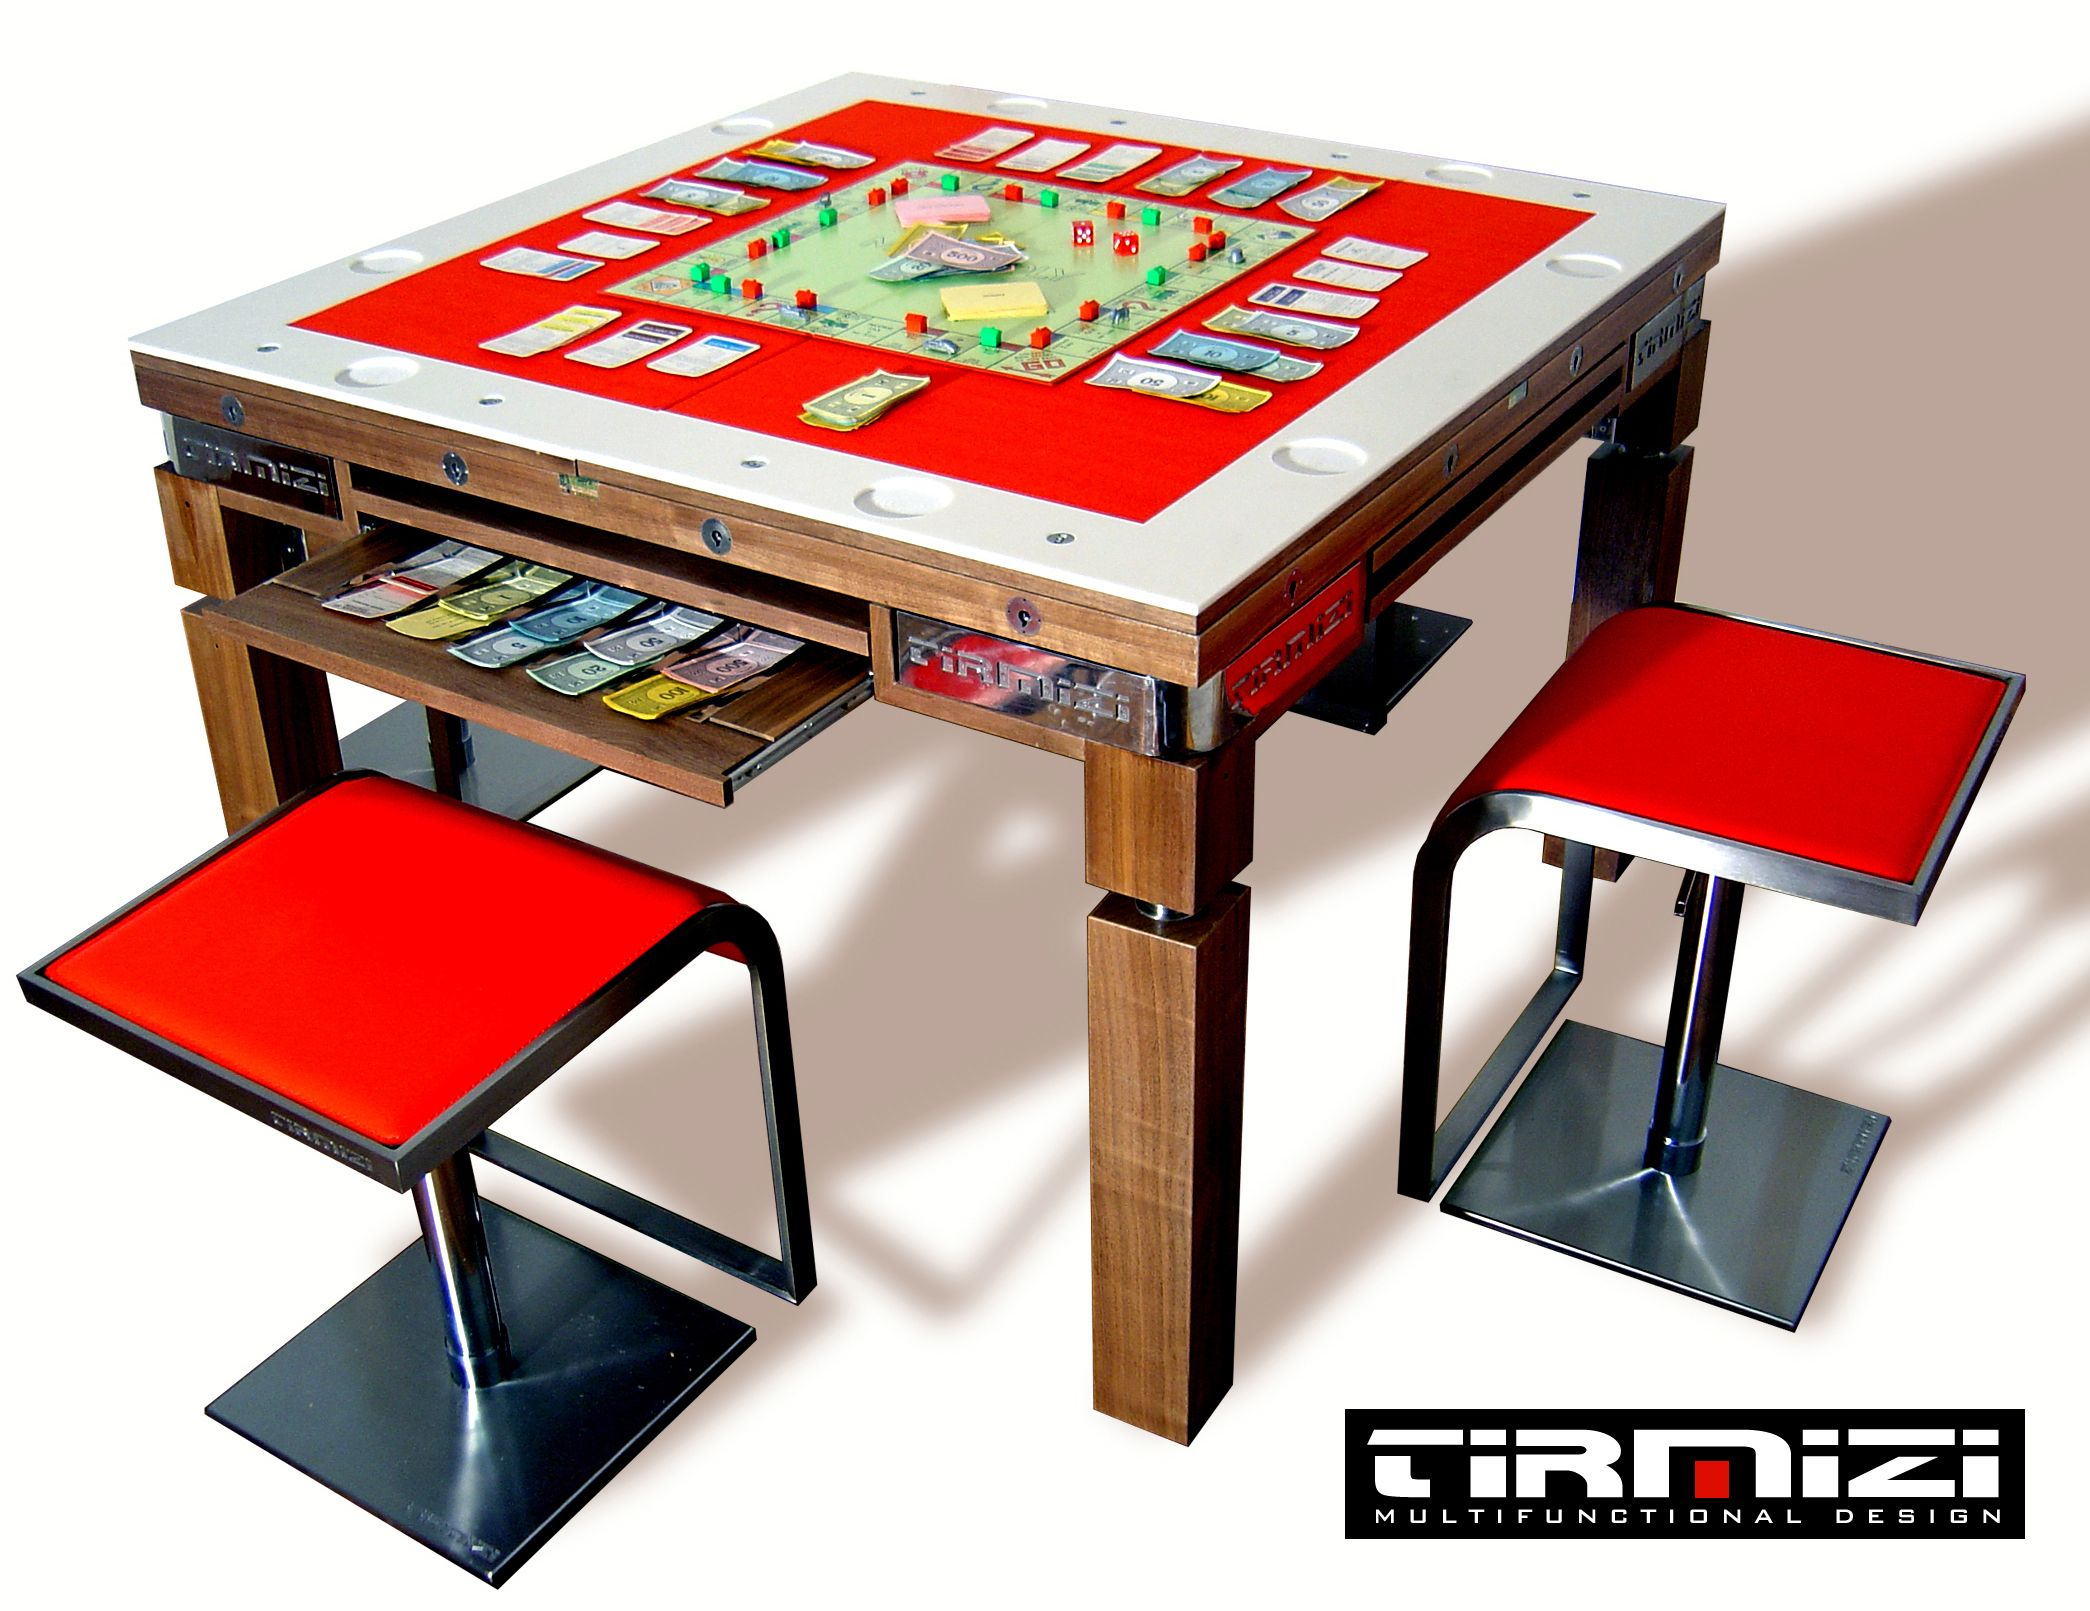 Farrago Multifunctional Dining Table If You Enjoy Playing